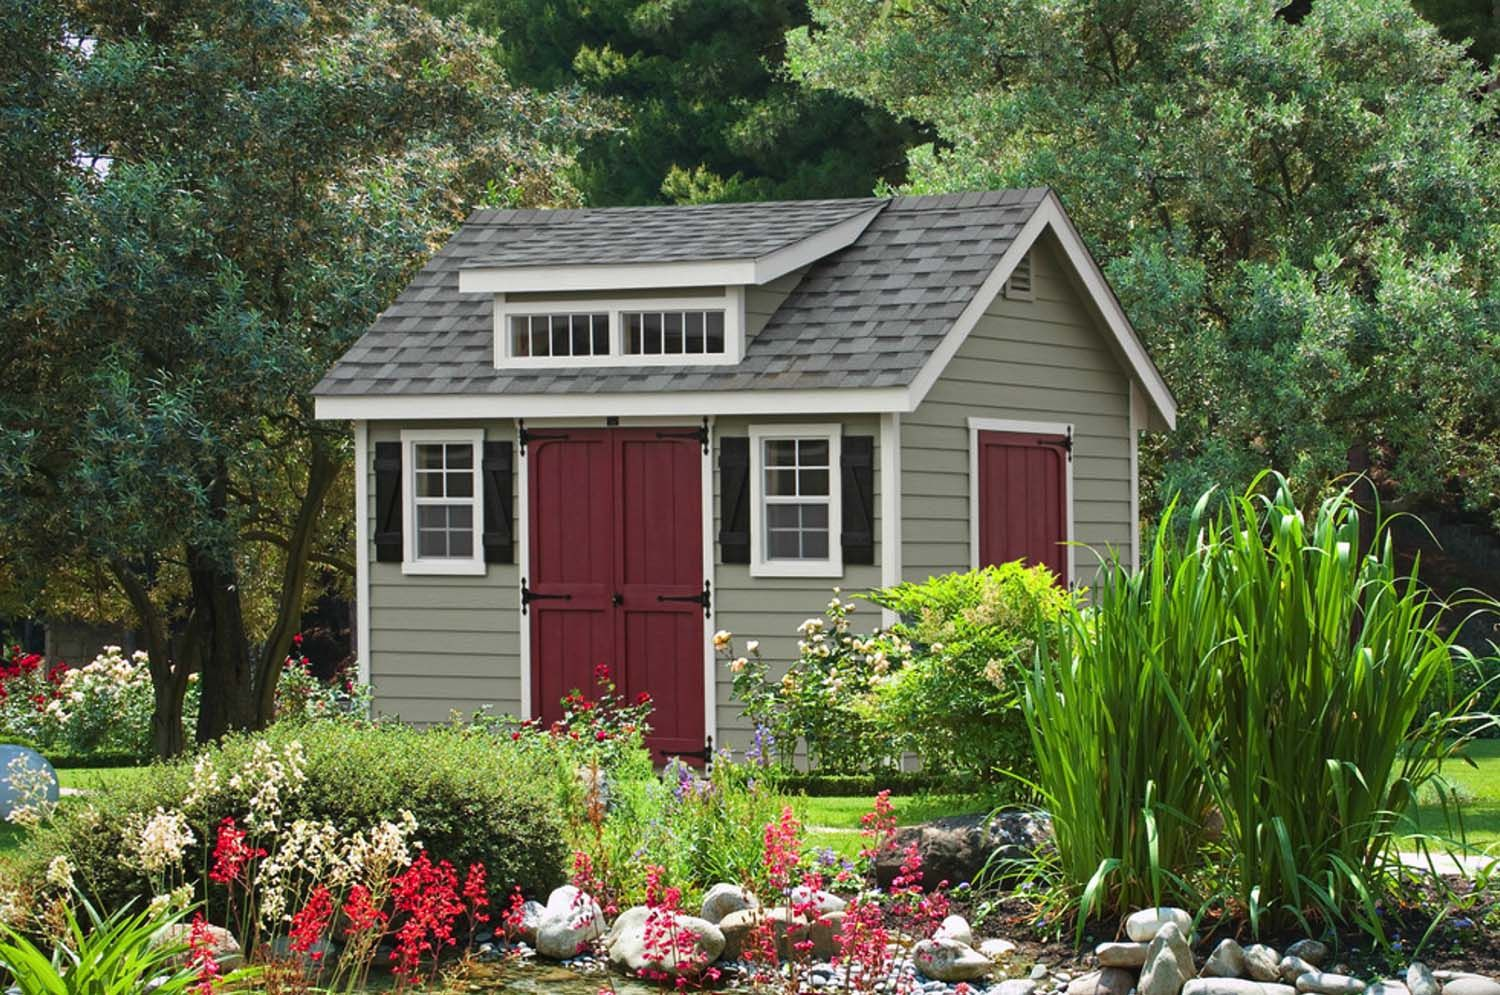 40 simply amazing garden shed ideas garden storage shed on extraordinary unique small storage shed ideas for your garden little plans for building id=57381